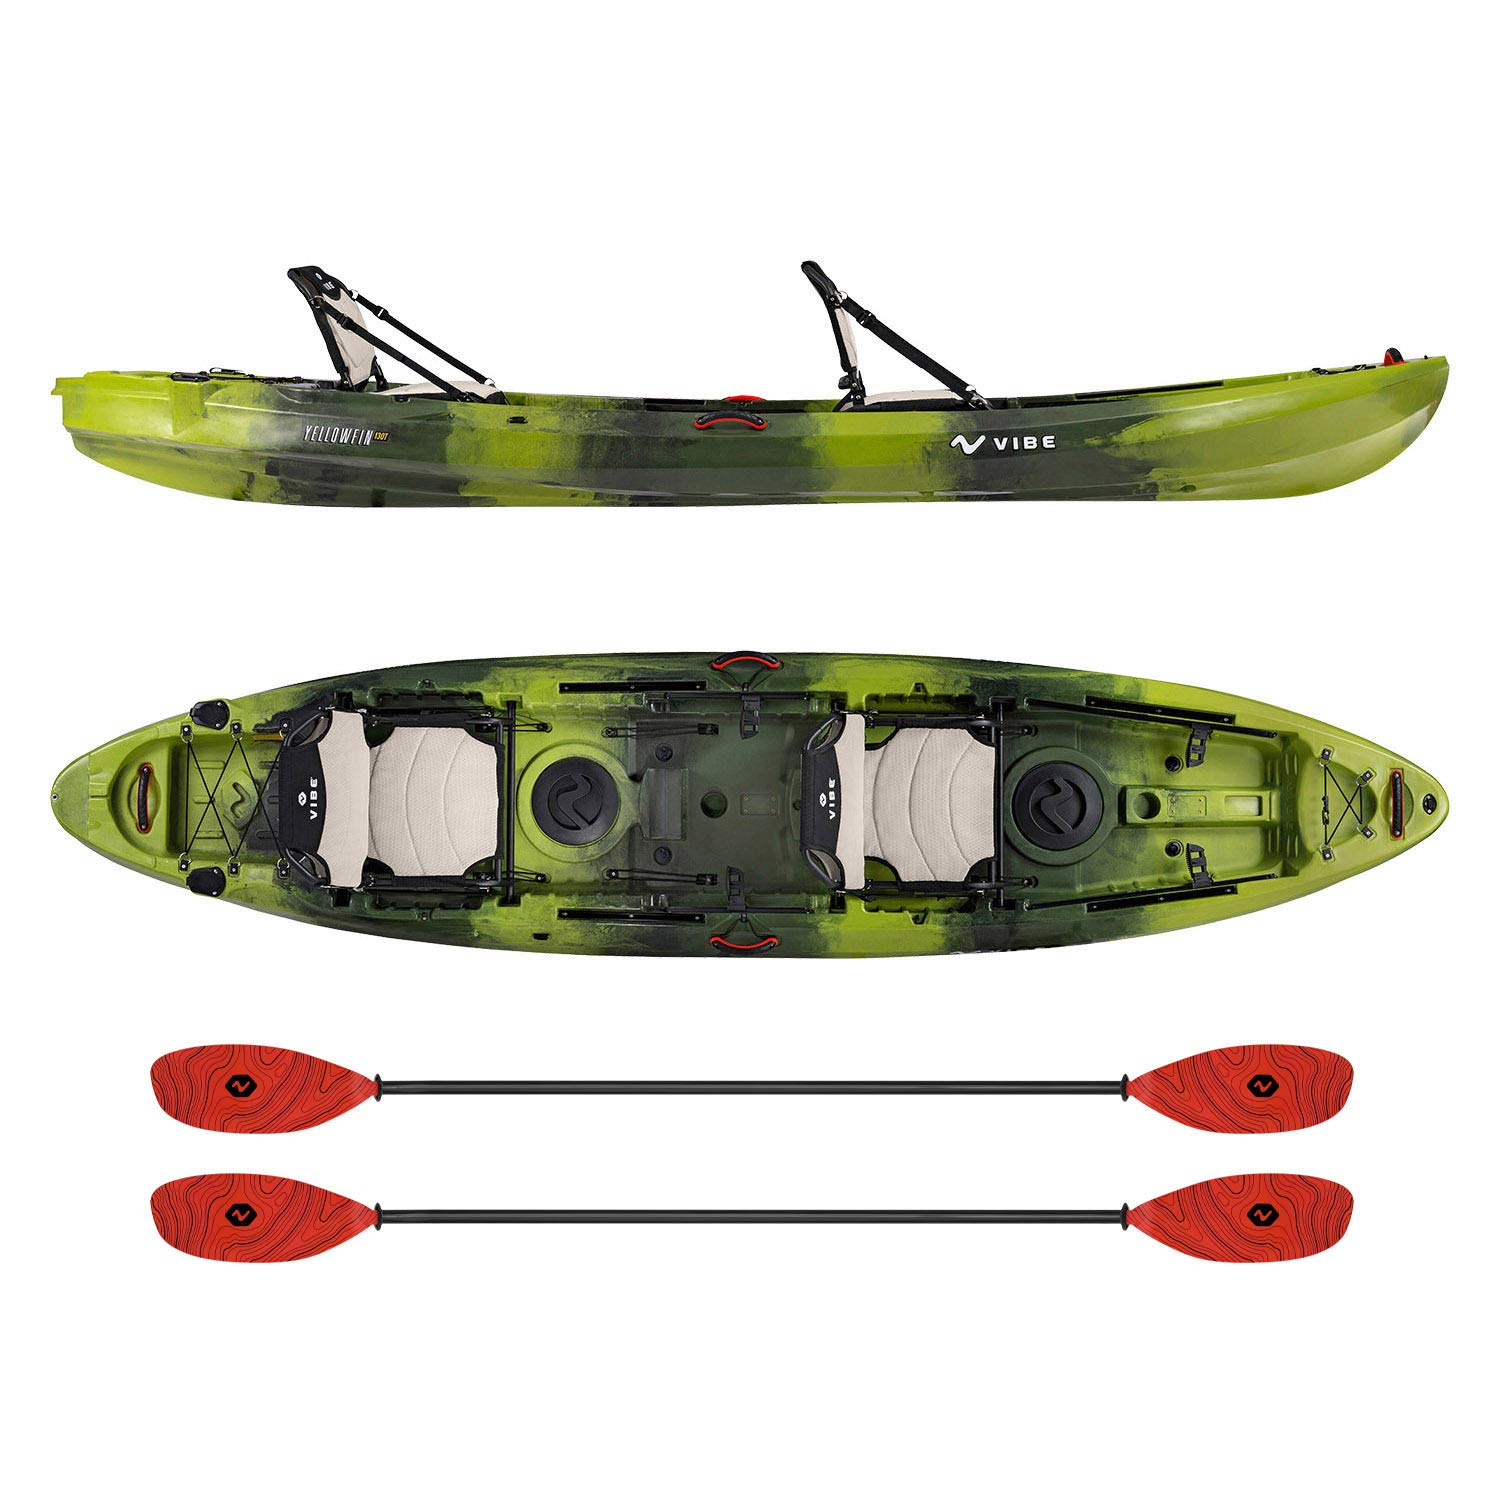 Vibe Kayaks Yellowfin 130T | 13 Foot | Tandem Angler and Recreational Two Person Sit On Top Fishing Kayak with 2 Paddles and 2 Hero Comfort Seats (Moss Camo - Tsunami Red Evolve Paddle)